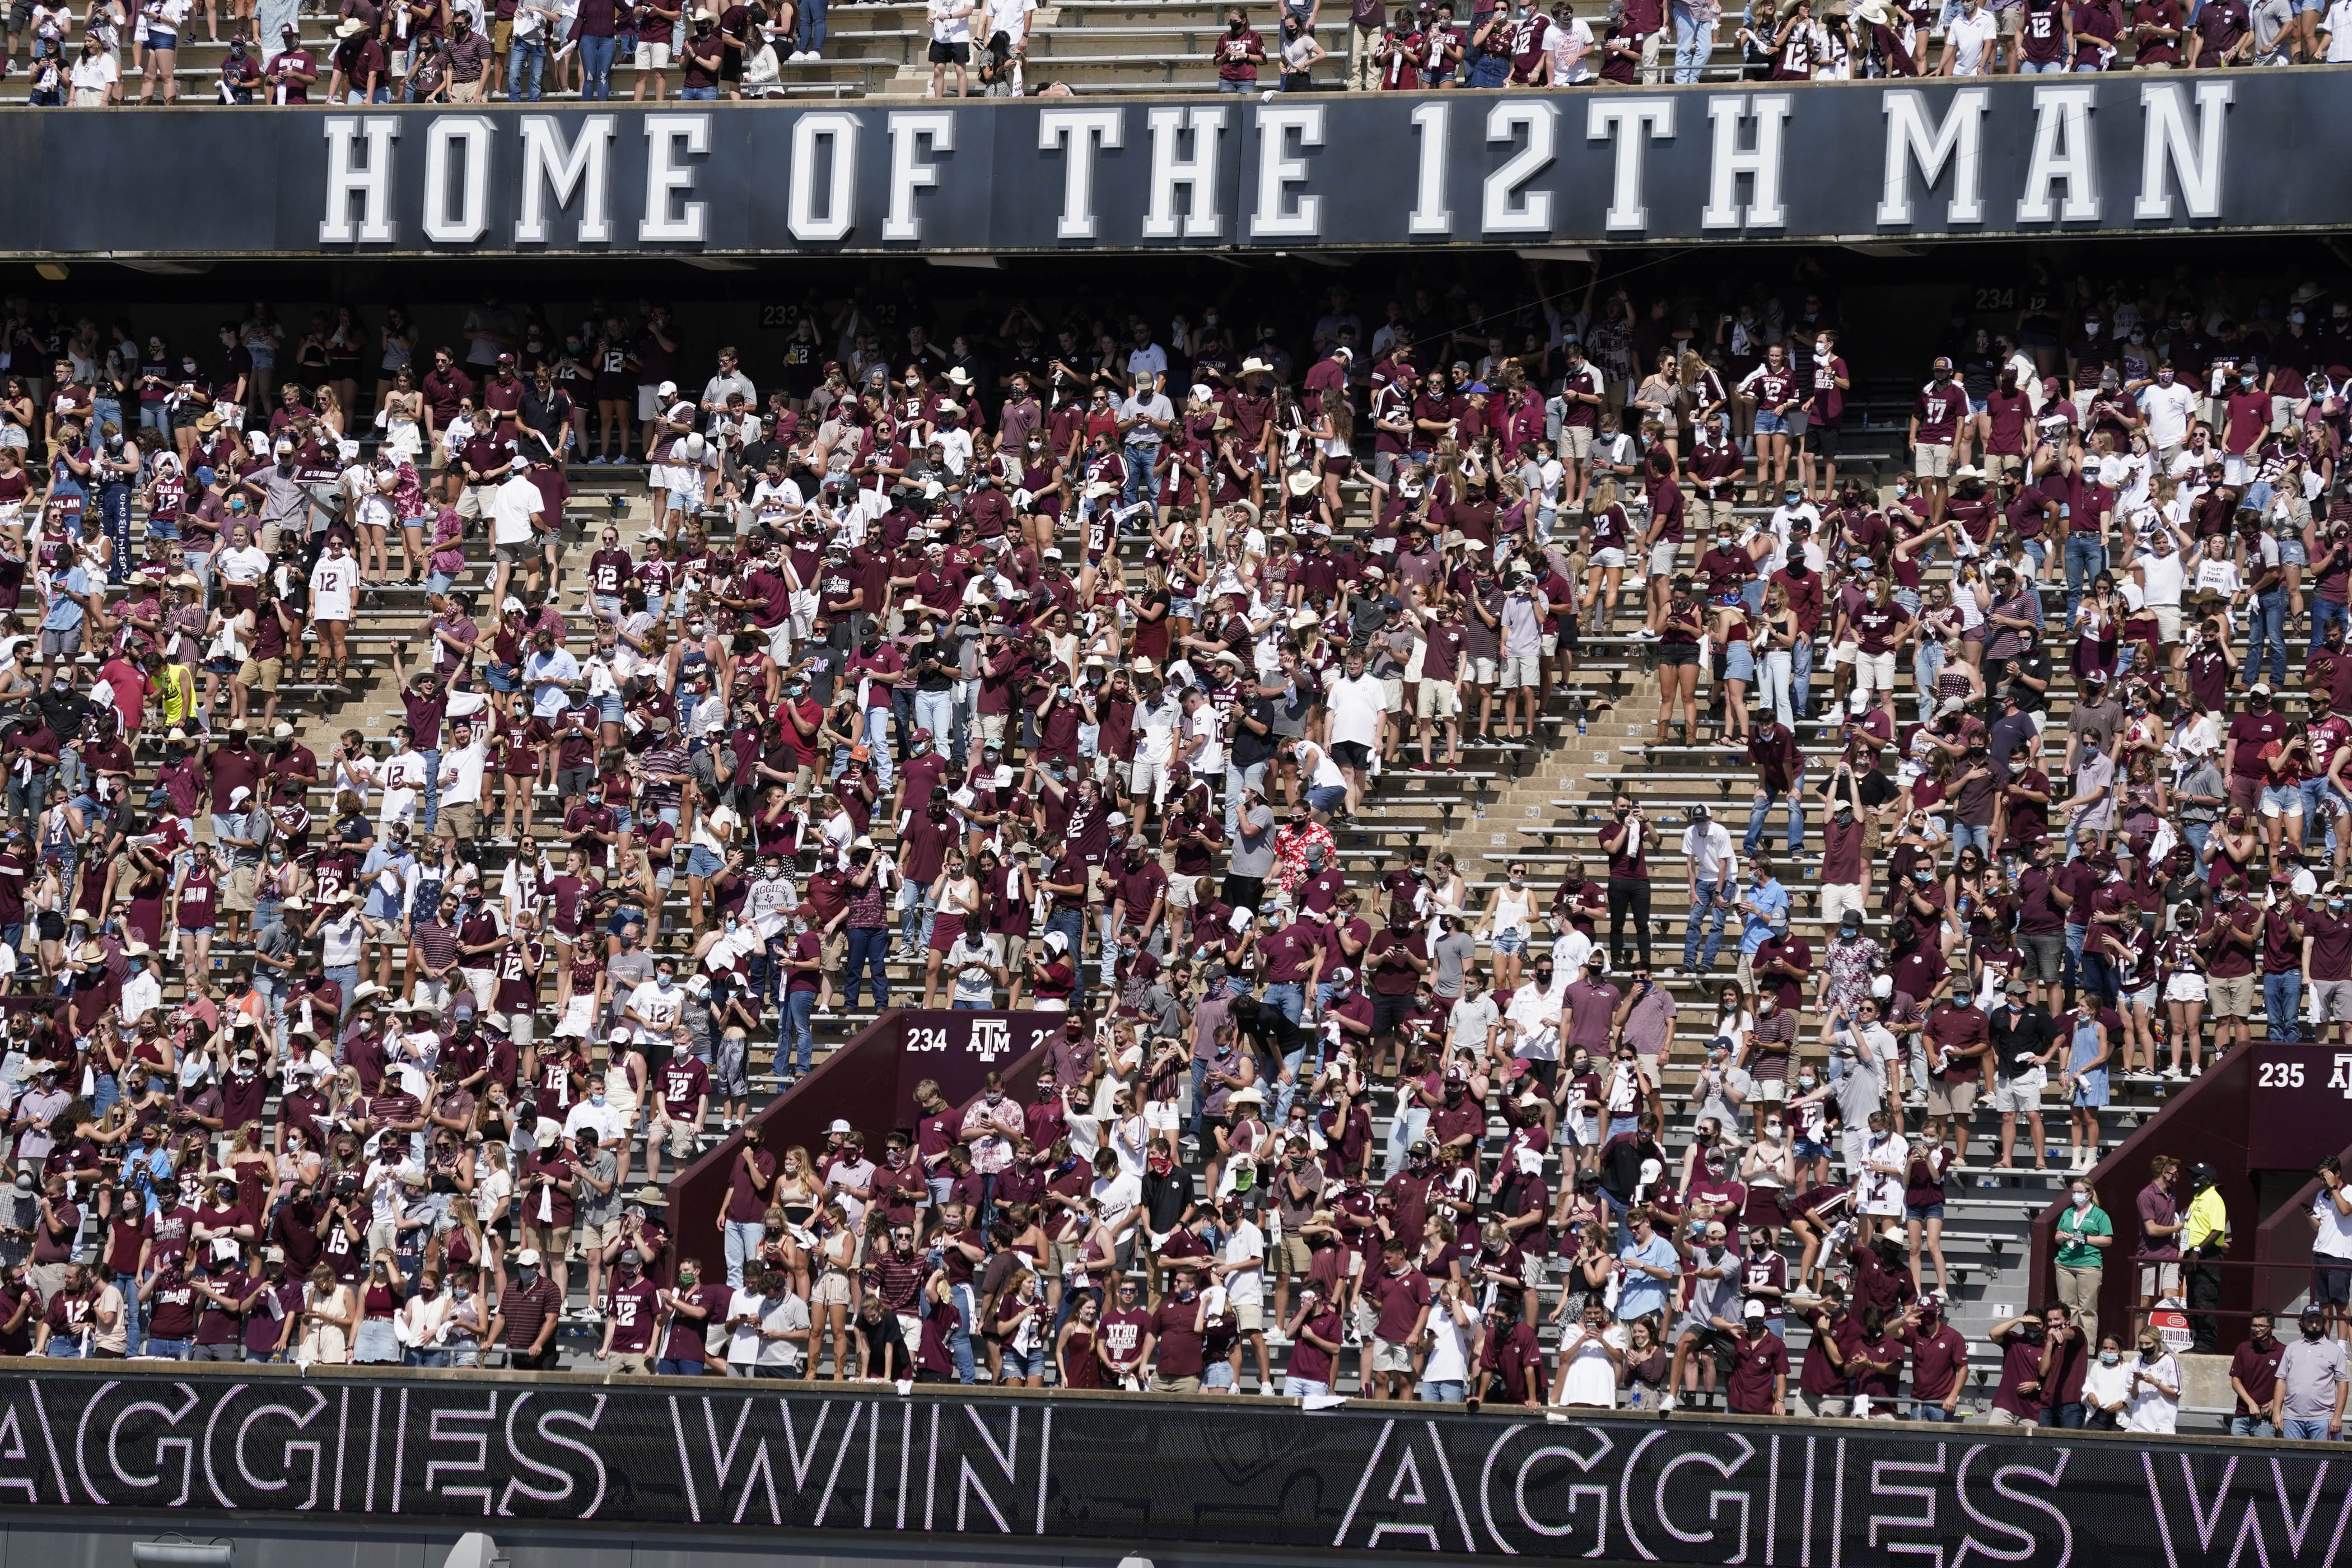 Texas A&M Aggies fans in the stands cheer after the team defeated the Florida Gators at Kyle Field, College Station, Texas, Oct 10, 2020. Mandatory Credit: Scott Wachter-USA TODAY Sports